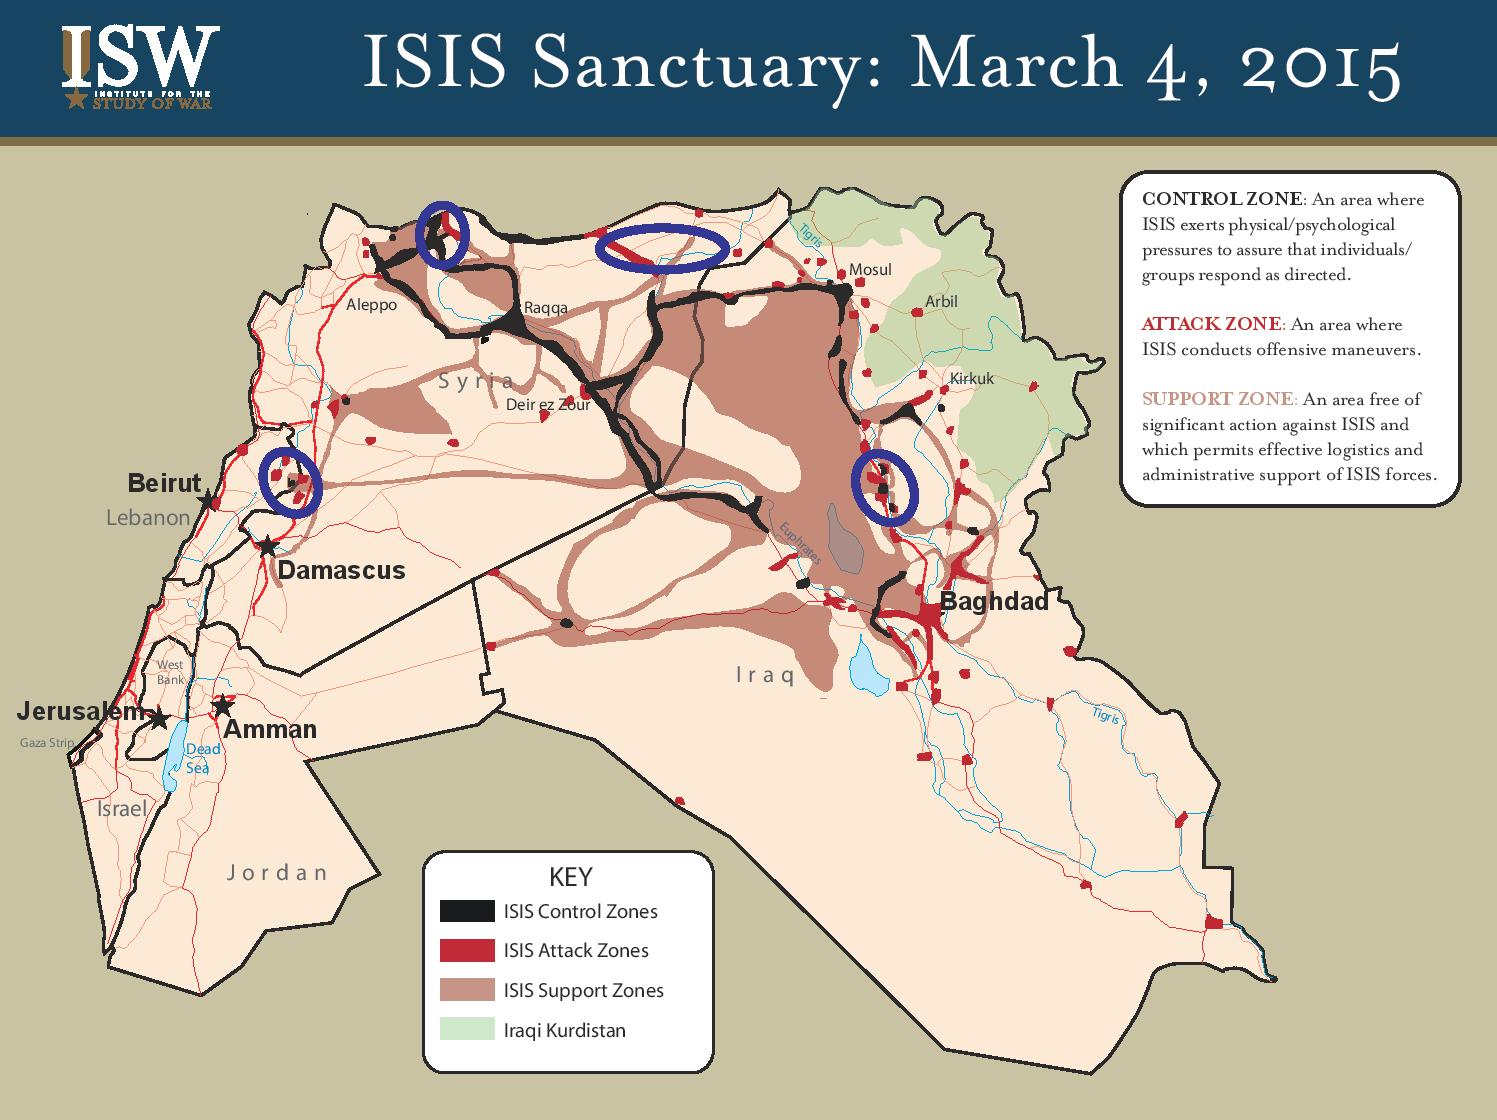 ISIS_Sanctuary_Map_with captions_approved_0-page-002 (2)